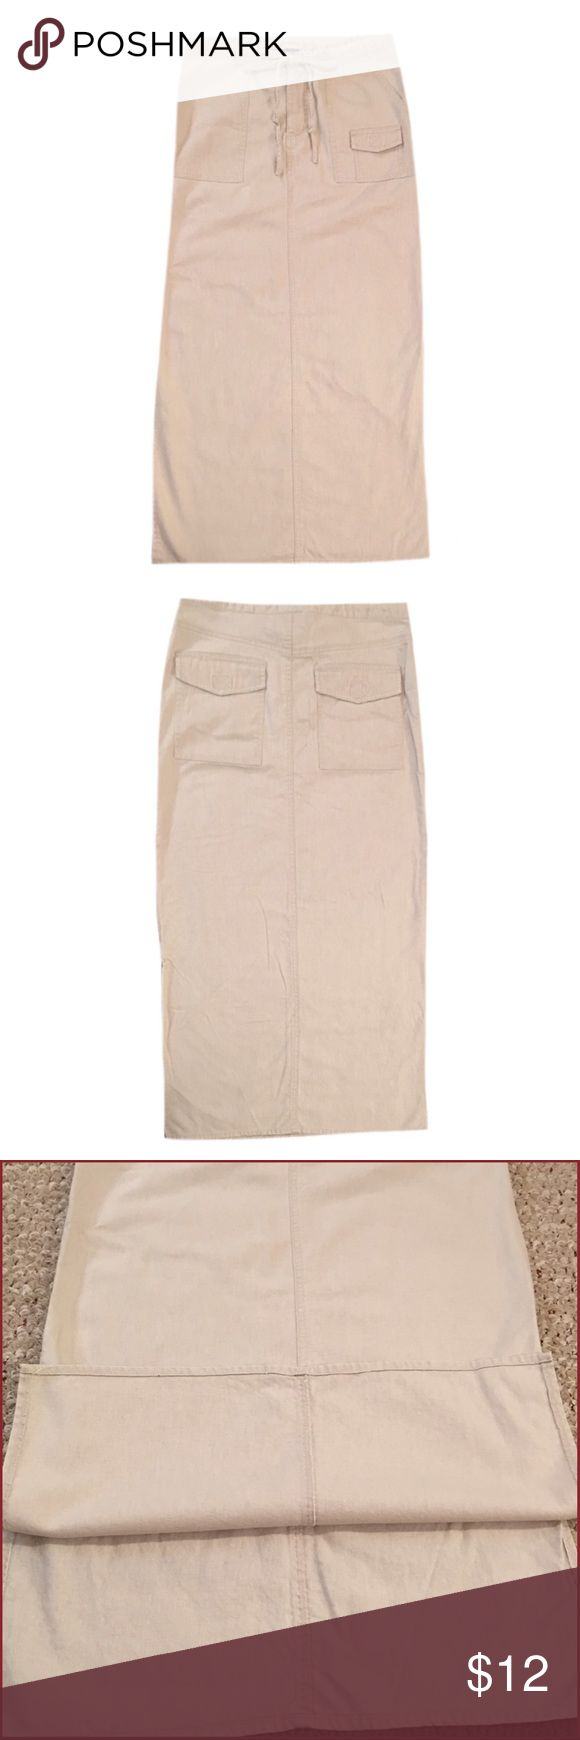 """Jypsy Jeans Long Khaki Skirt Gently used woman's Jypsy Jeans size x-small long khaki skirt. There are slits on both sides of the skirt. Made with 55% Linen and 45% Cotton. Length is 36"""" Jypsy Jeans Skirts"""